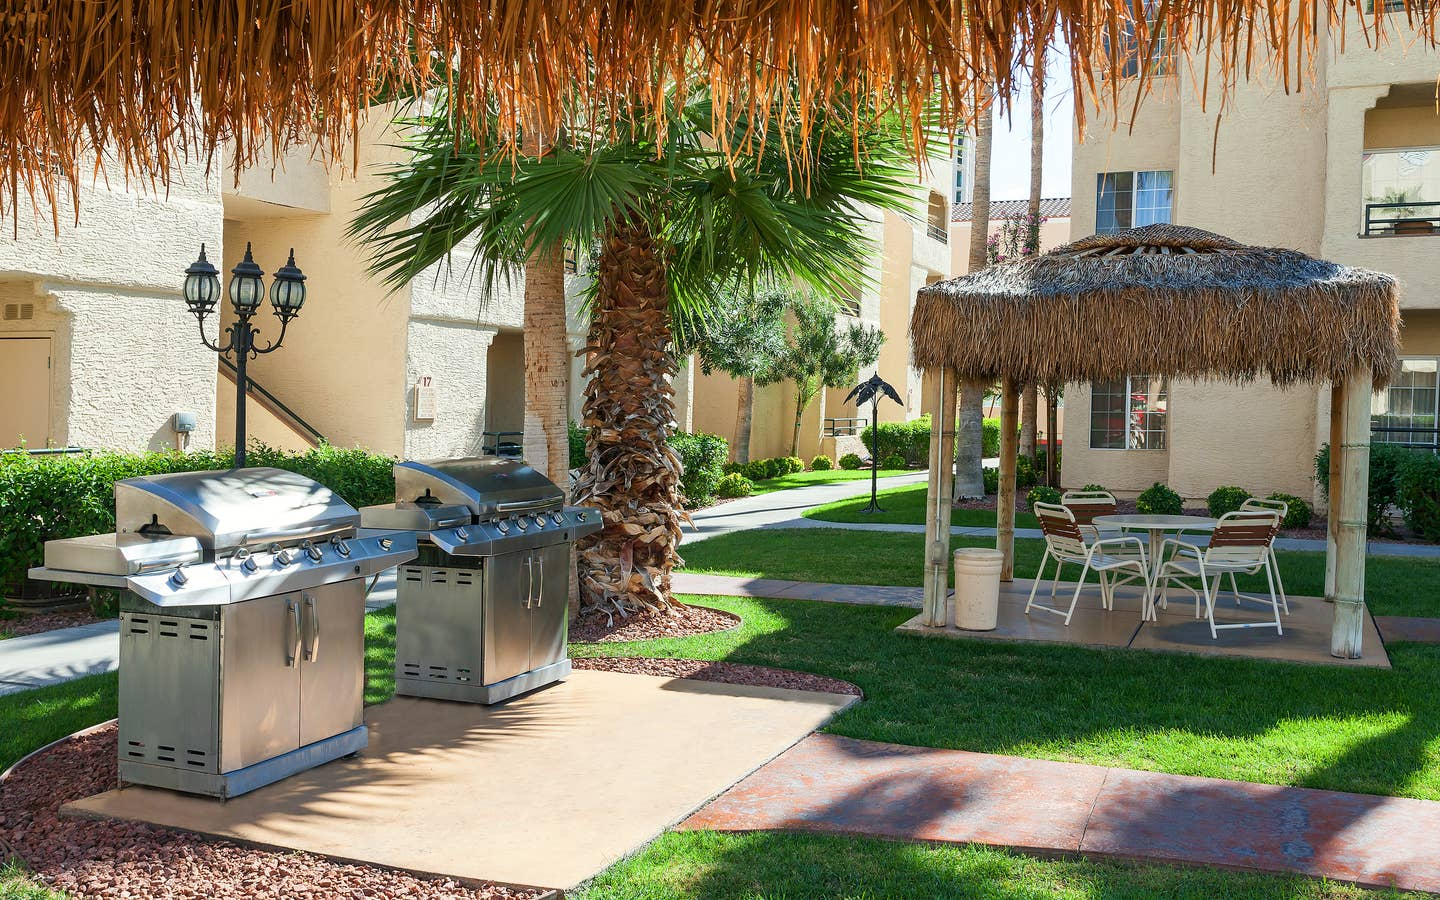 Barbecue grills at Desert Club Resort in Las Vegas, Nevada.